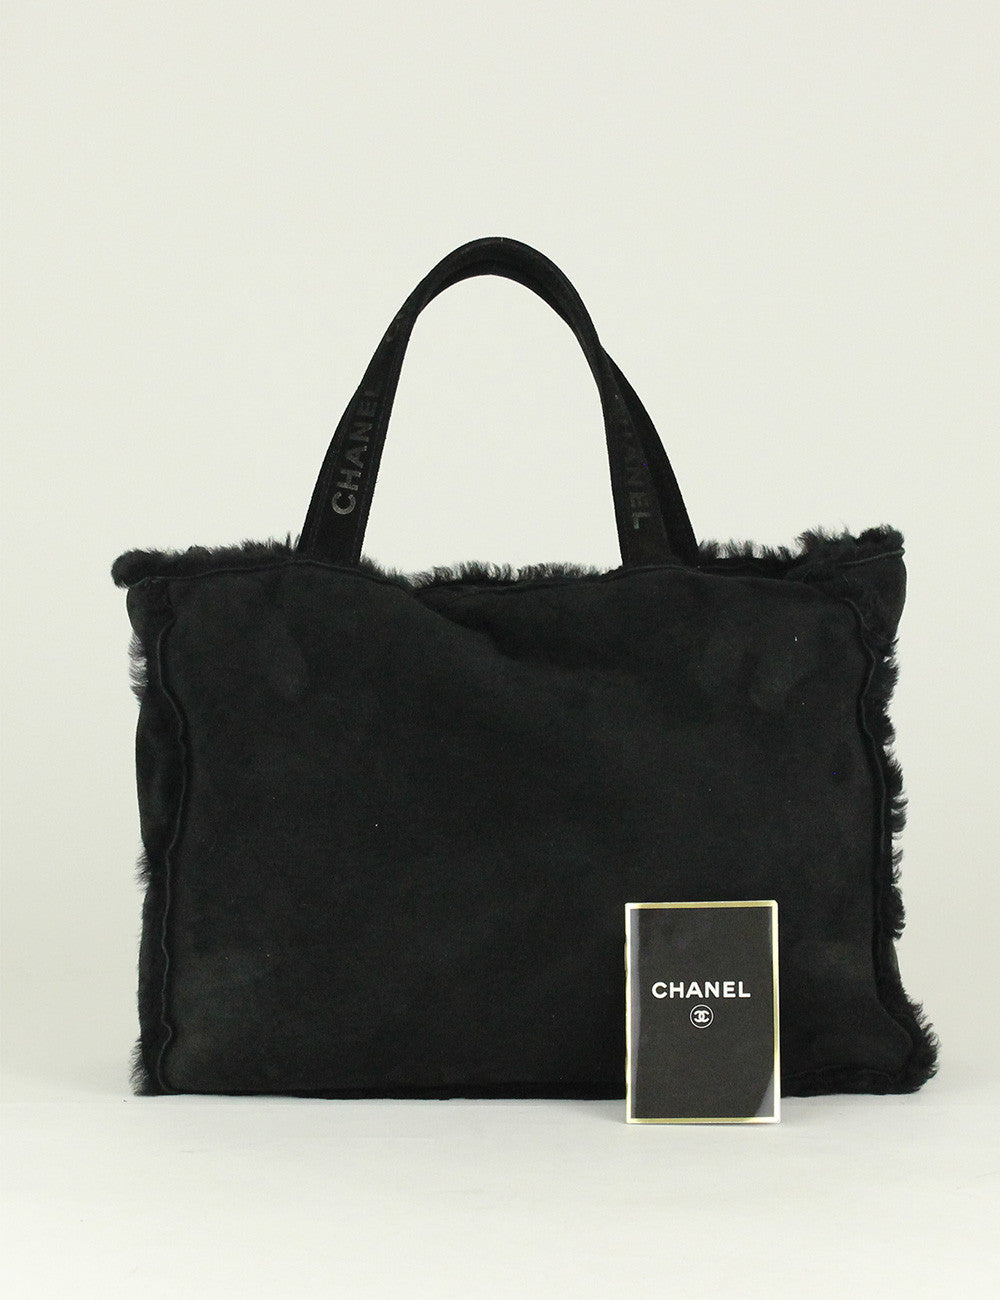 Chanel <br> Sheepskin and Fur Large Tote Bag